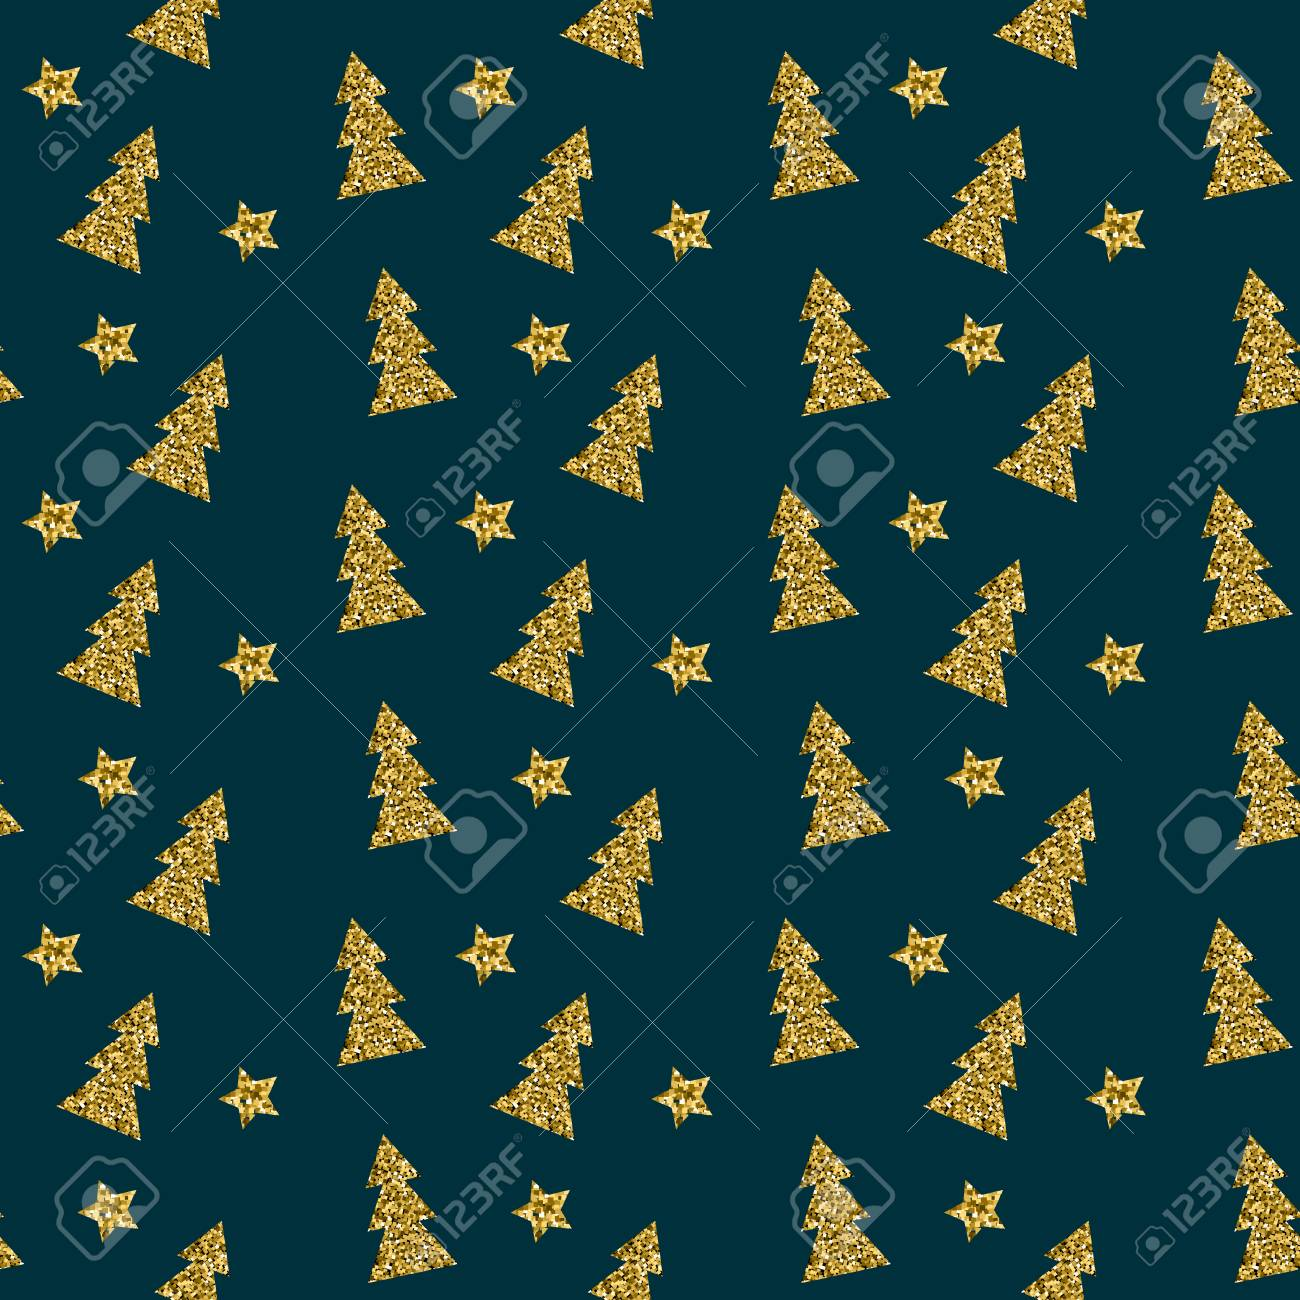 Seamless Pattern Of Gold Christmas Tree On Blue Background Elegant